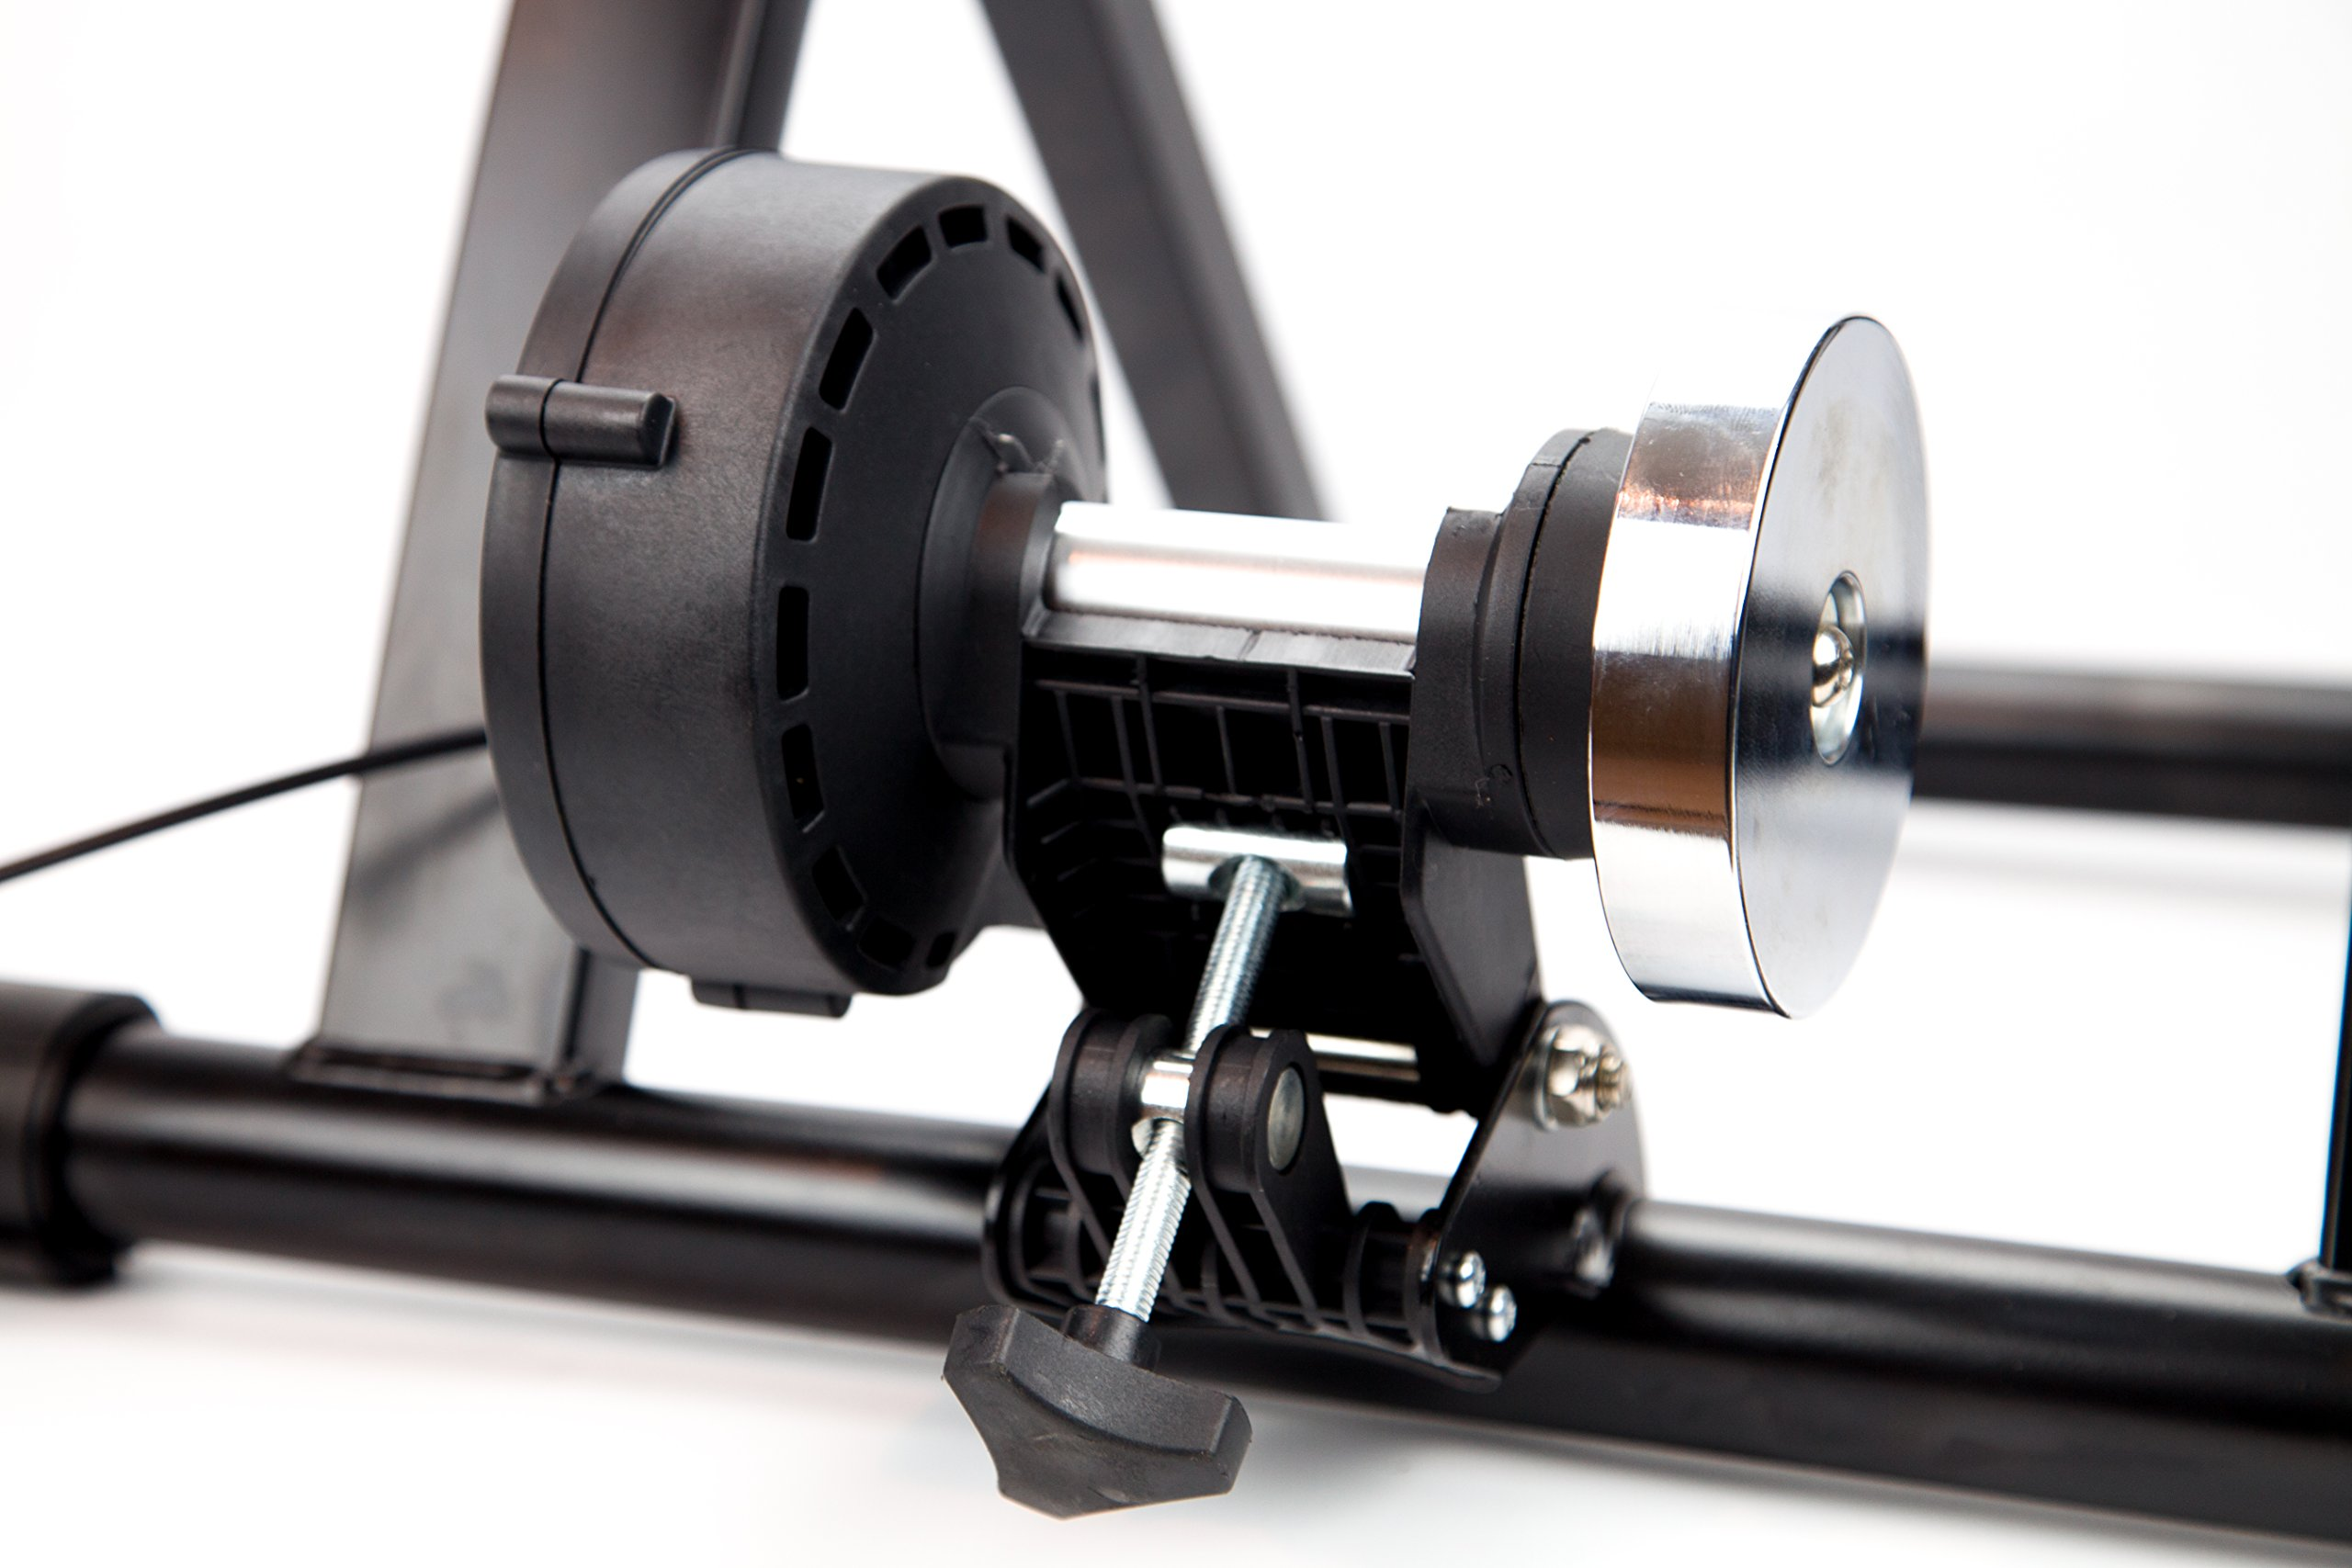 Useful UH-BT167 Magnet Steel Bike Bicycle Indoor Exercise Trainer Stand by Useful. (Image #2)